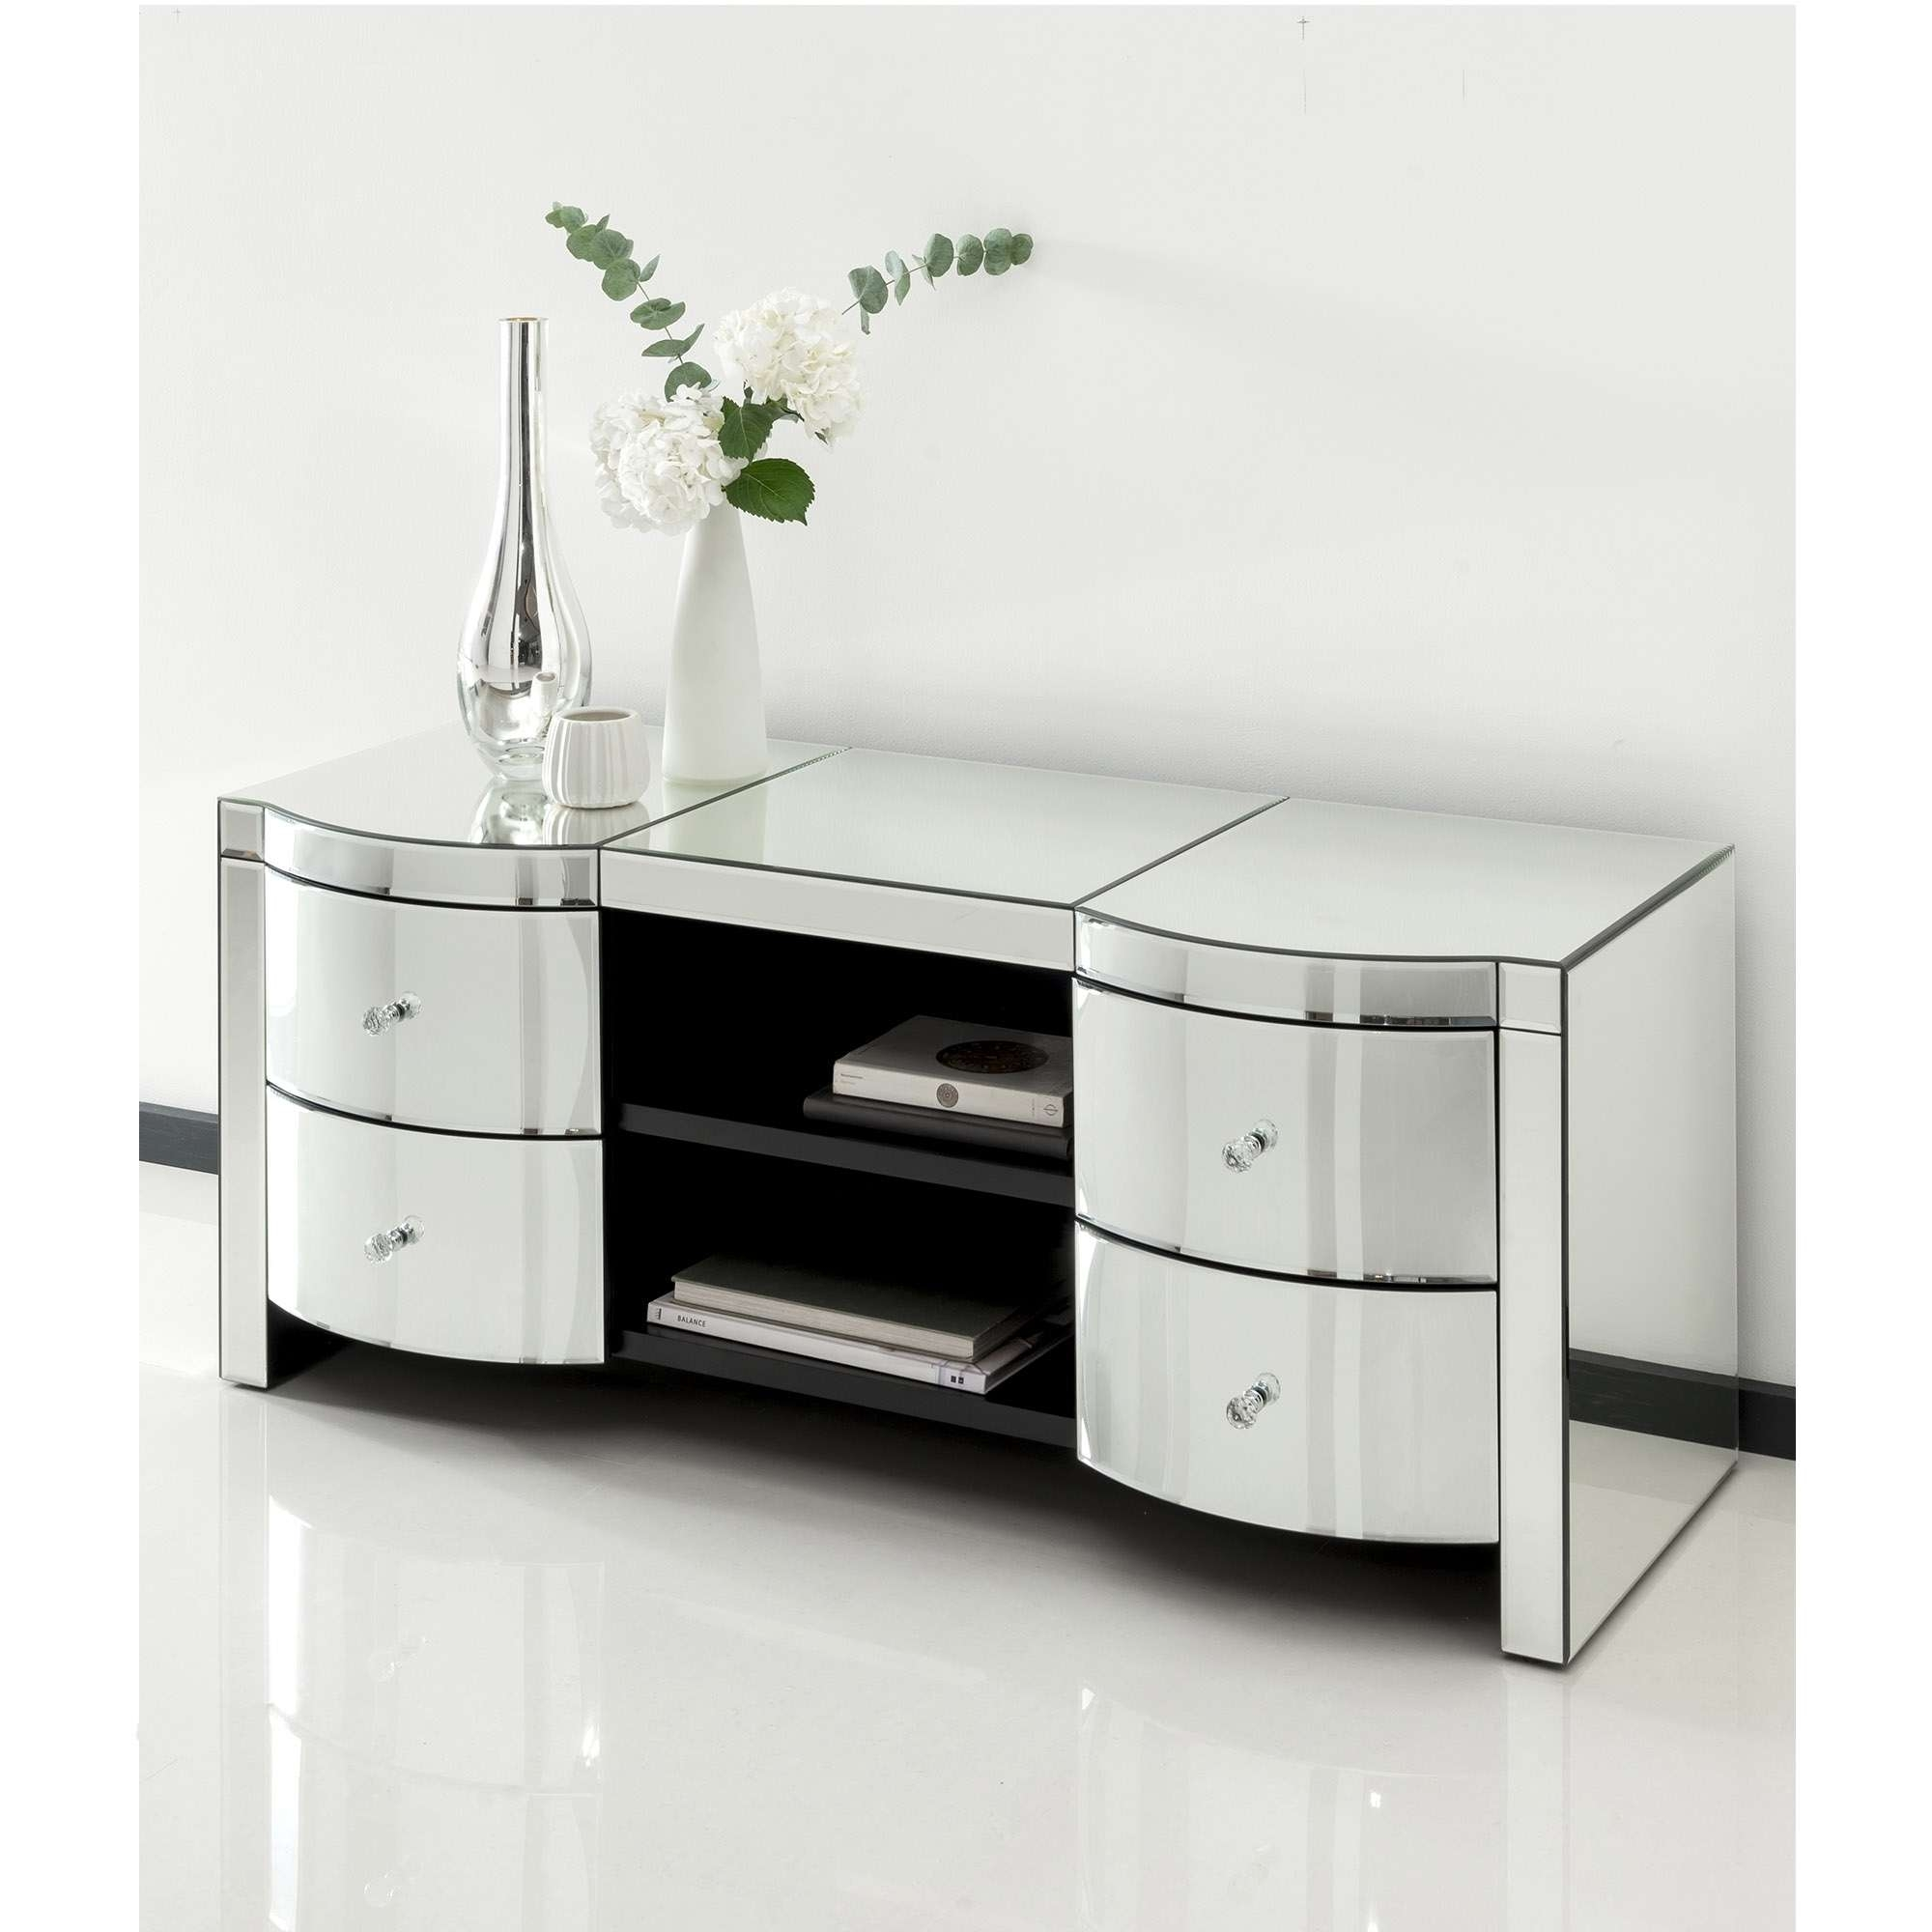 Romano Crystal Mirrored Tv Cabinet | Venetian Mirrored Furniture Intended For Mirrored Tv Stands (View 10 of 15)